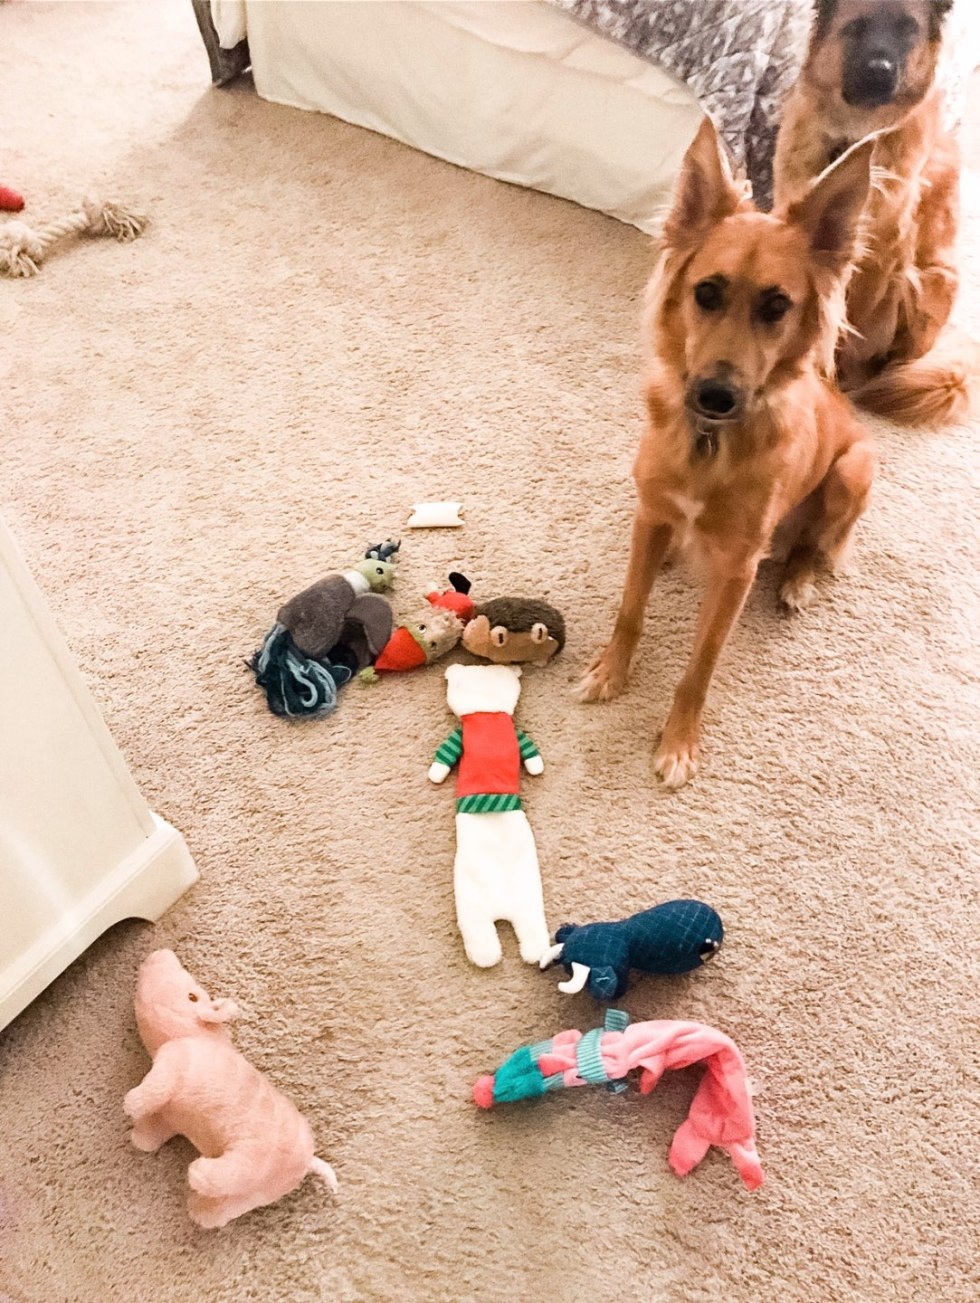 Top 10 Best Dog Toys on Amazon your Pup Will Love - I'm Fixin' To - @mbg0112